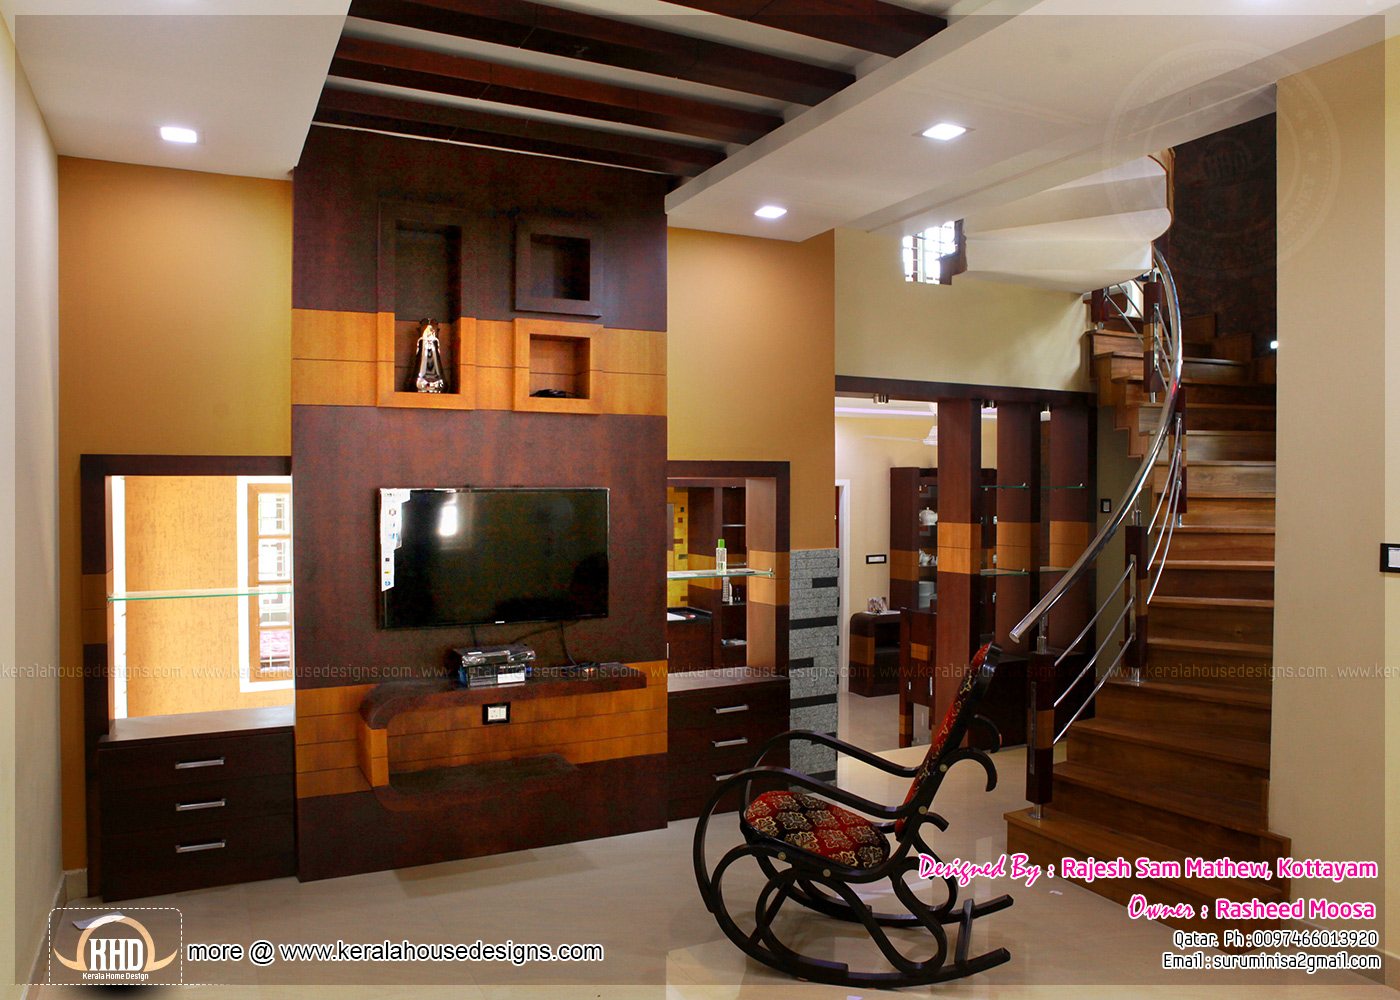 Kerala interior design with photos kerala home design for New model house interior design